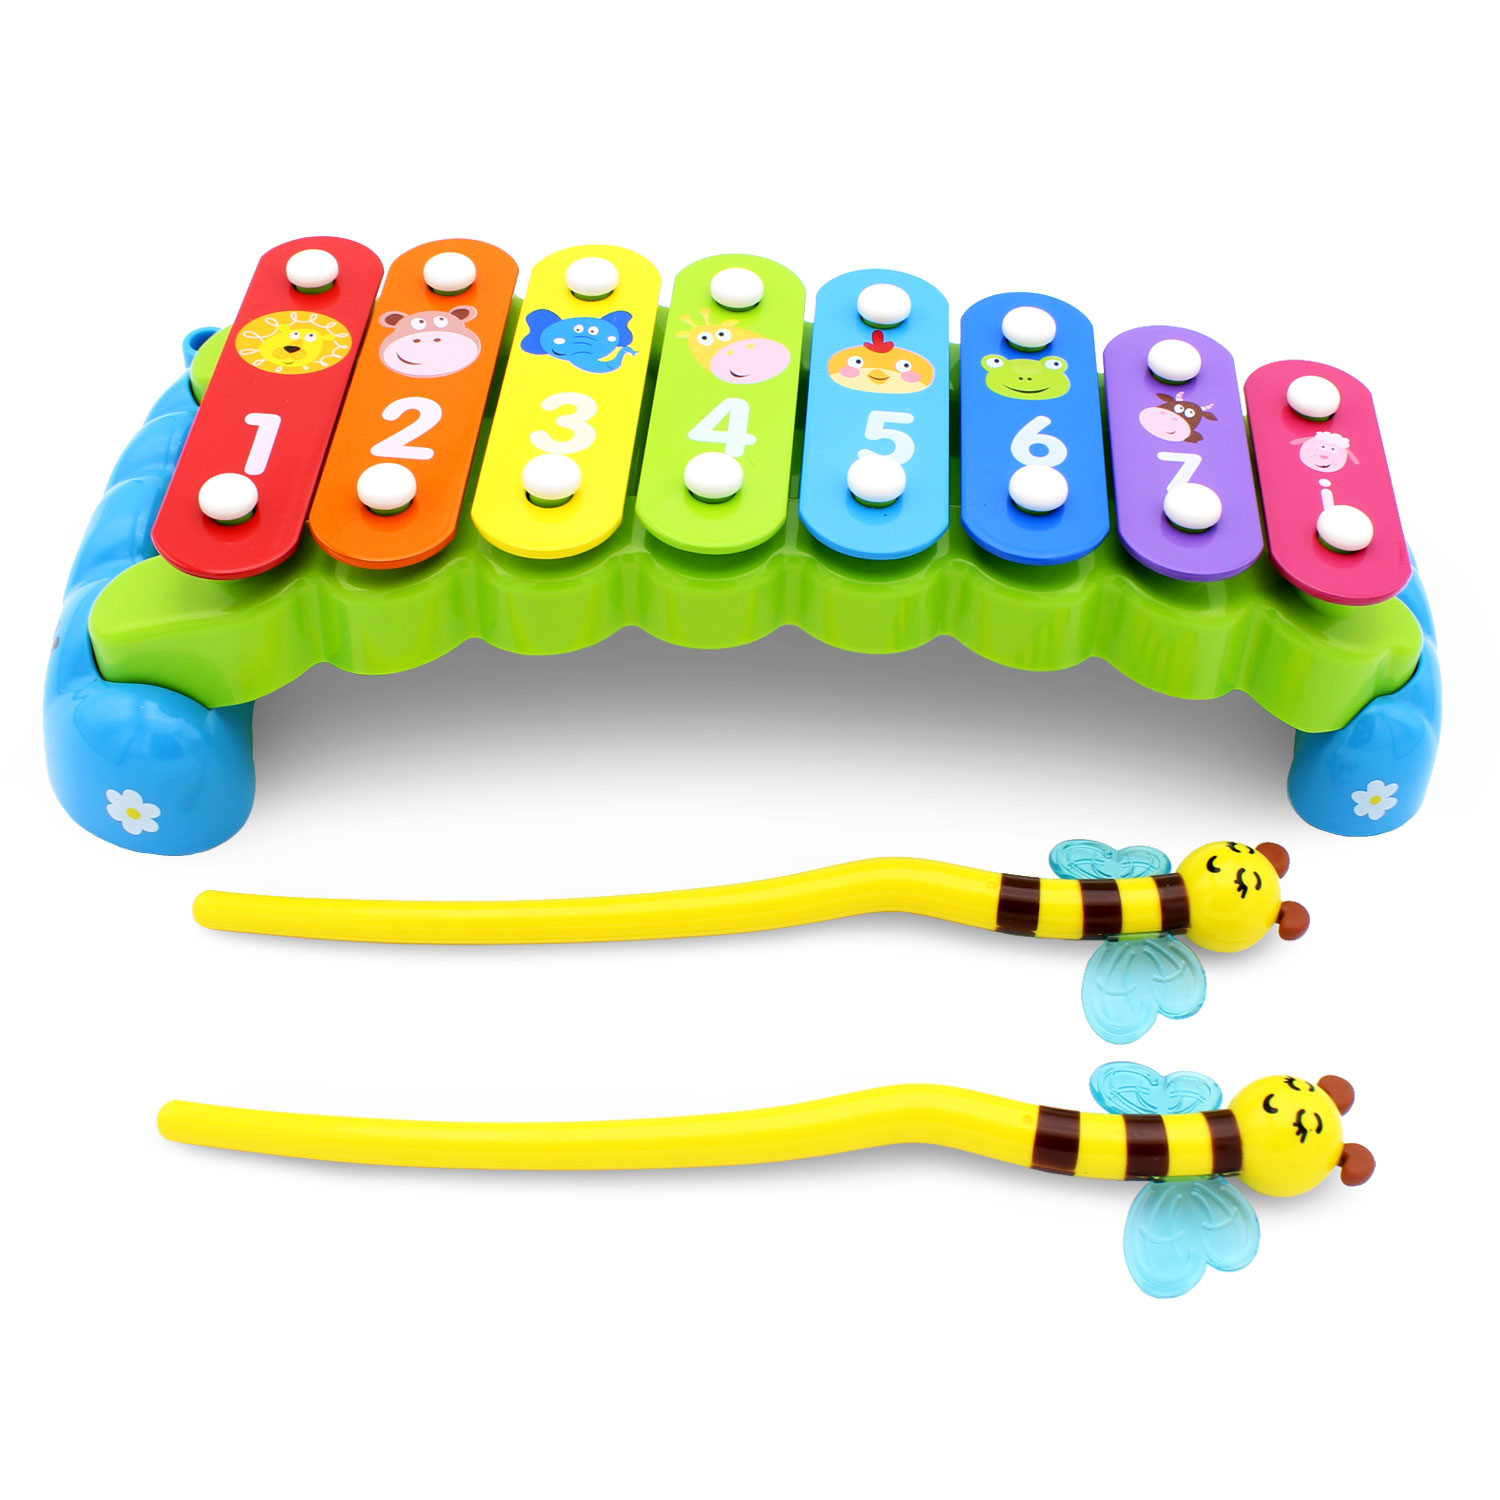 Rainbow Garden Xylophone for Babies Preschool Kids by Transformania Toys